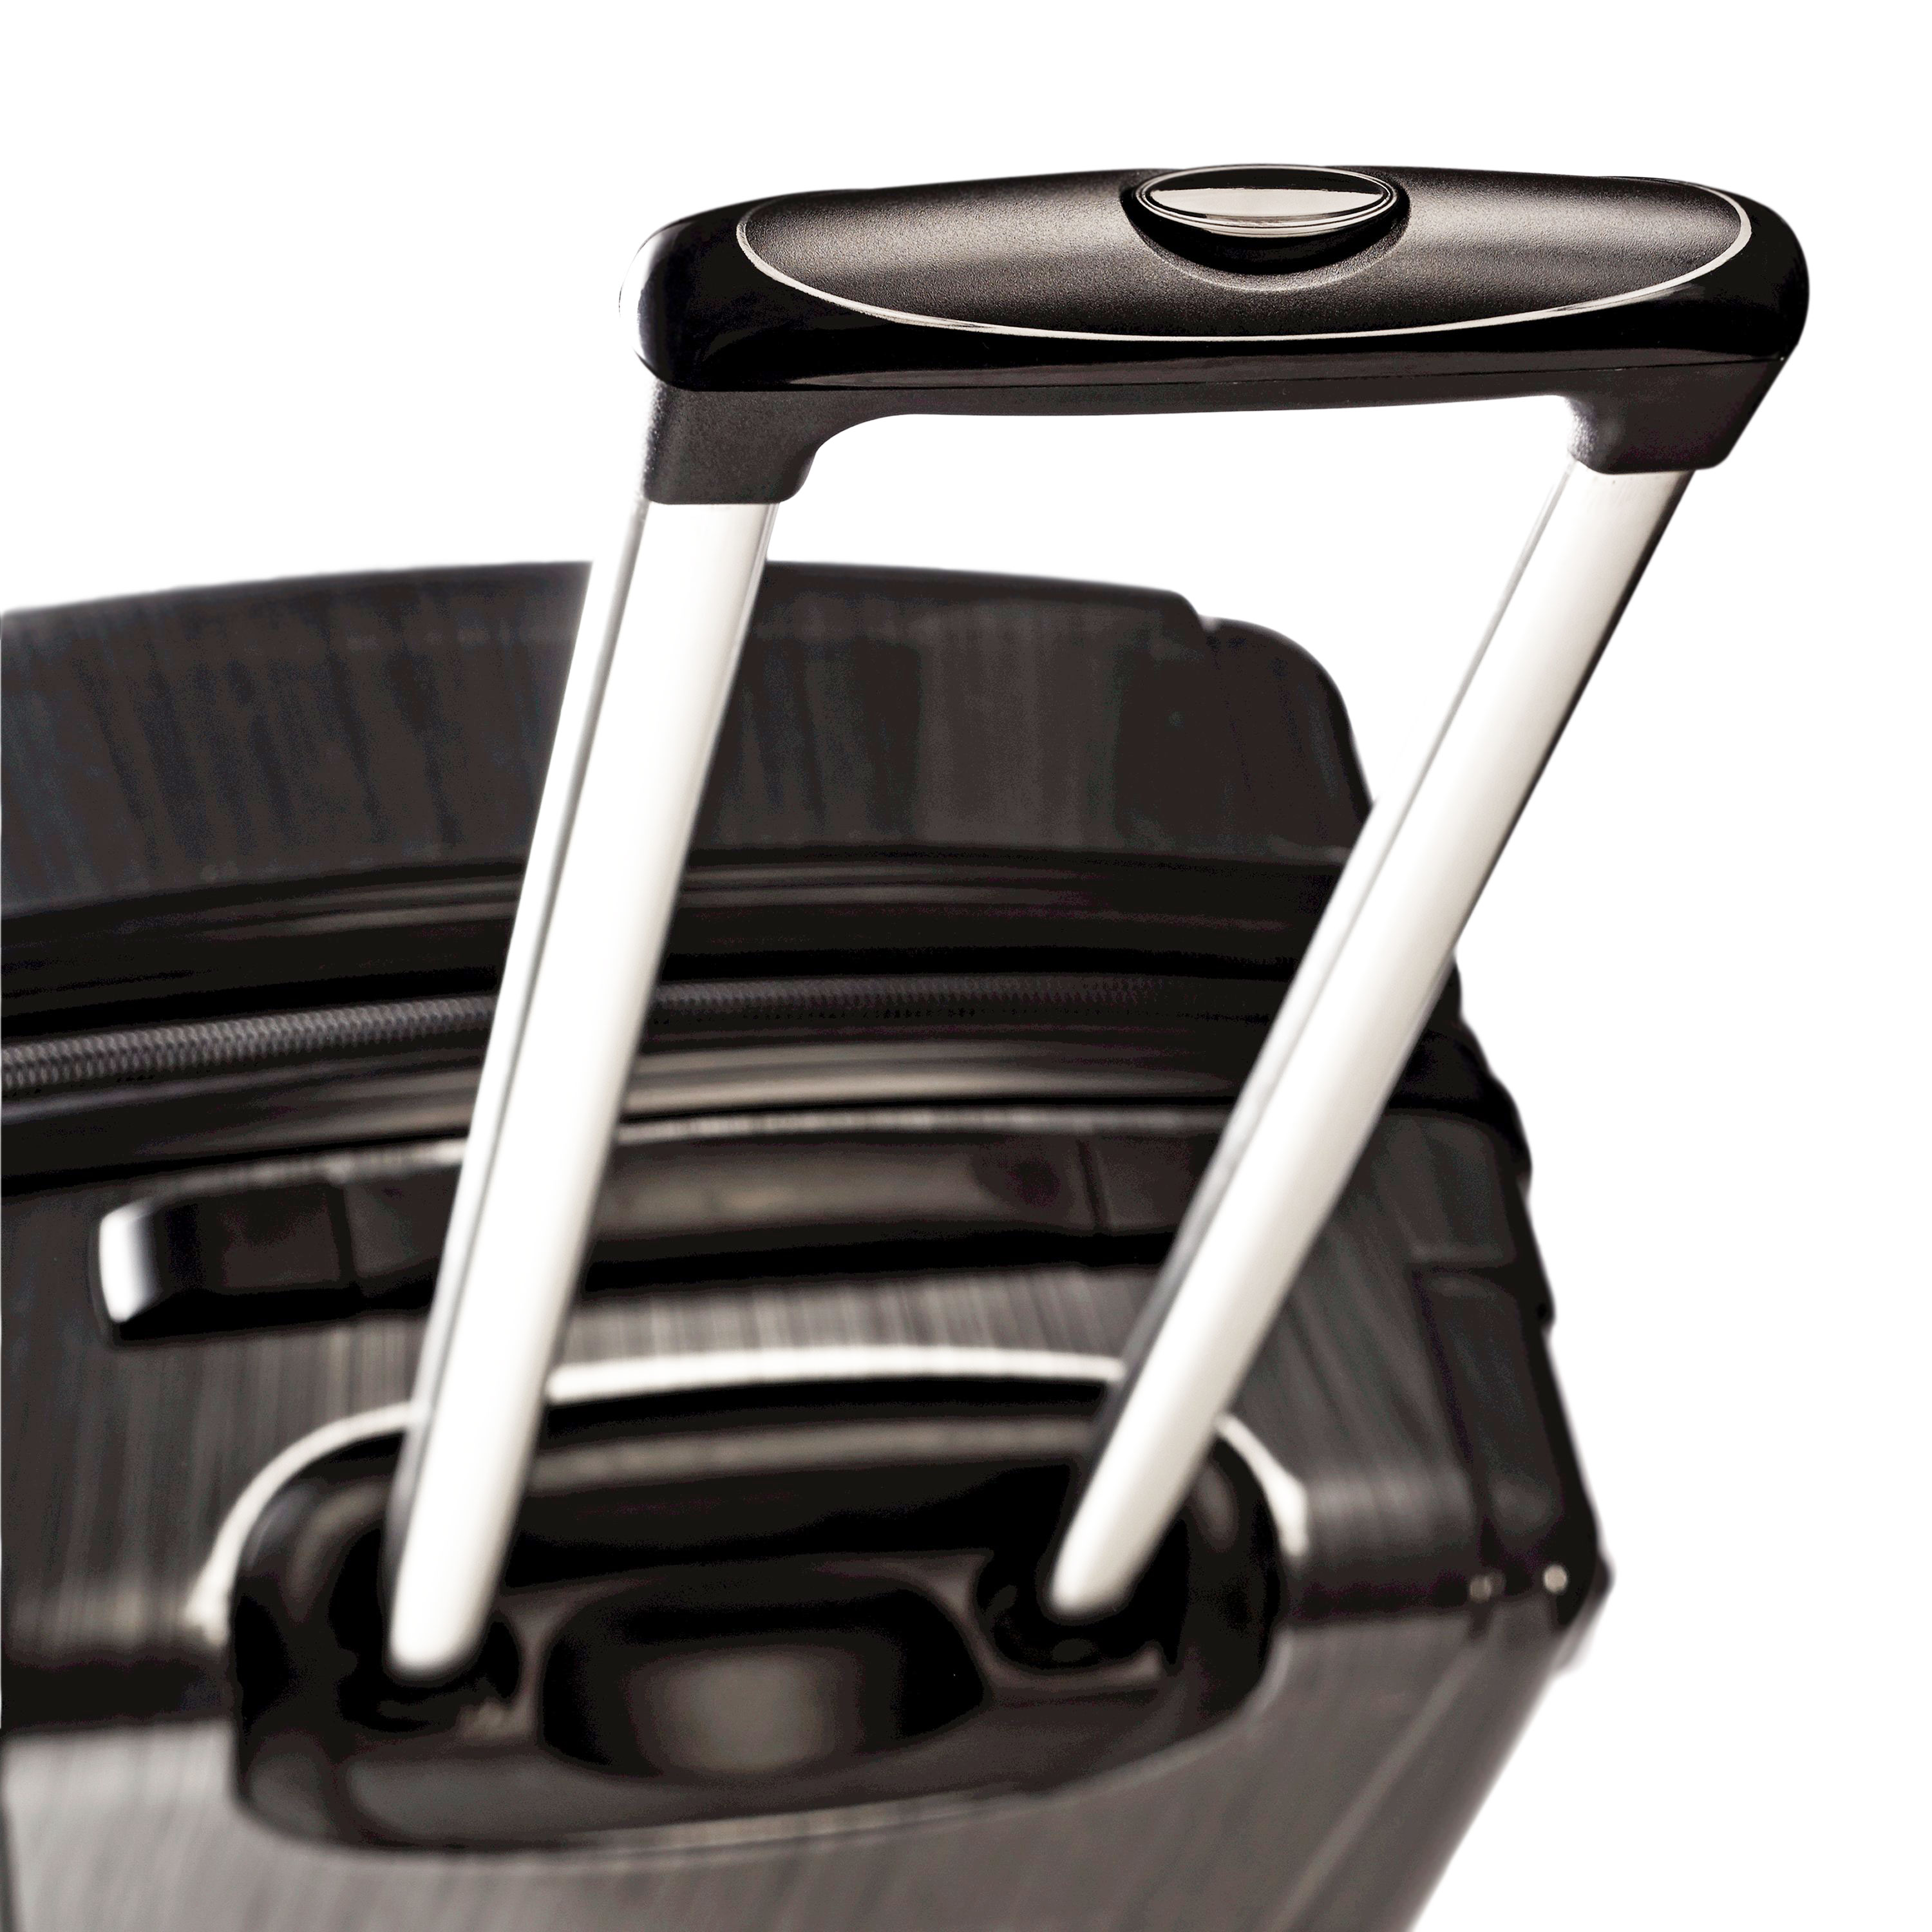 Samsonite-Winfield-2-Fashion-Spinner-Luggage thumbnail 6